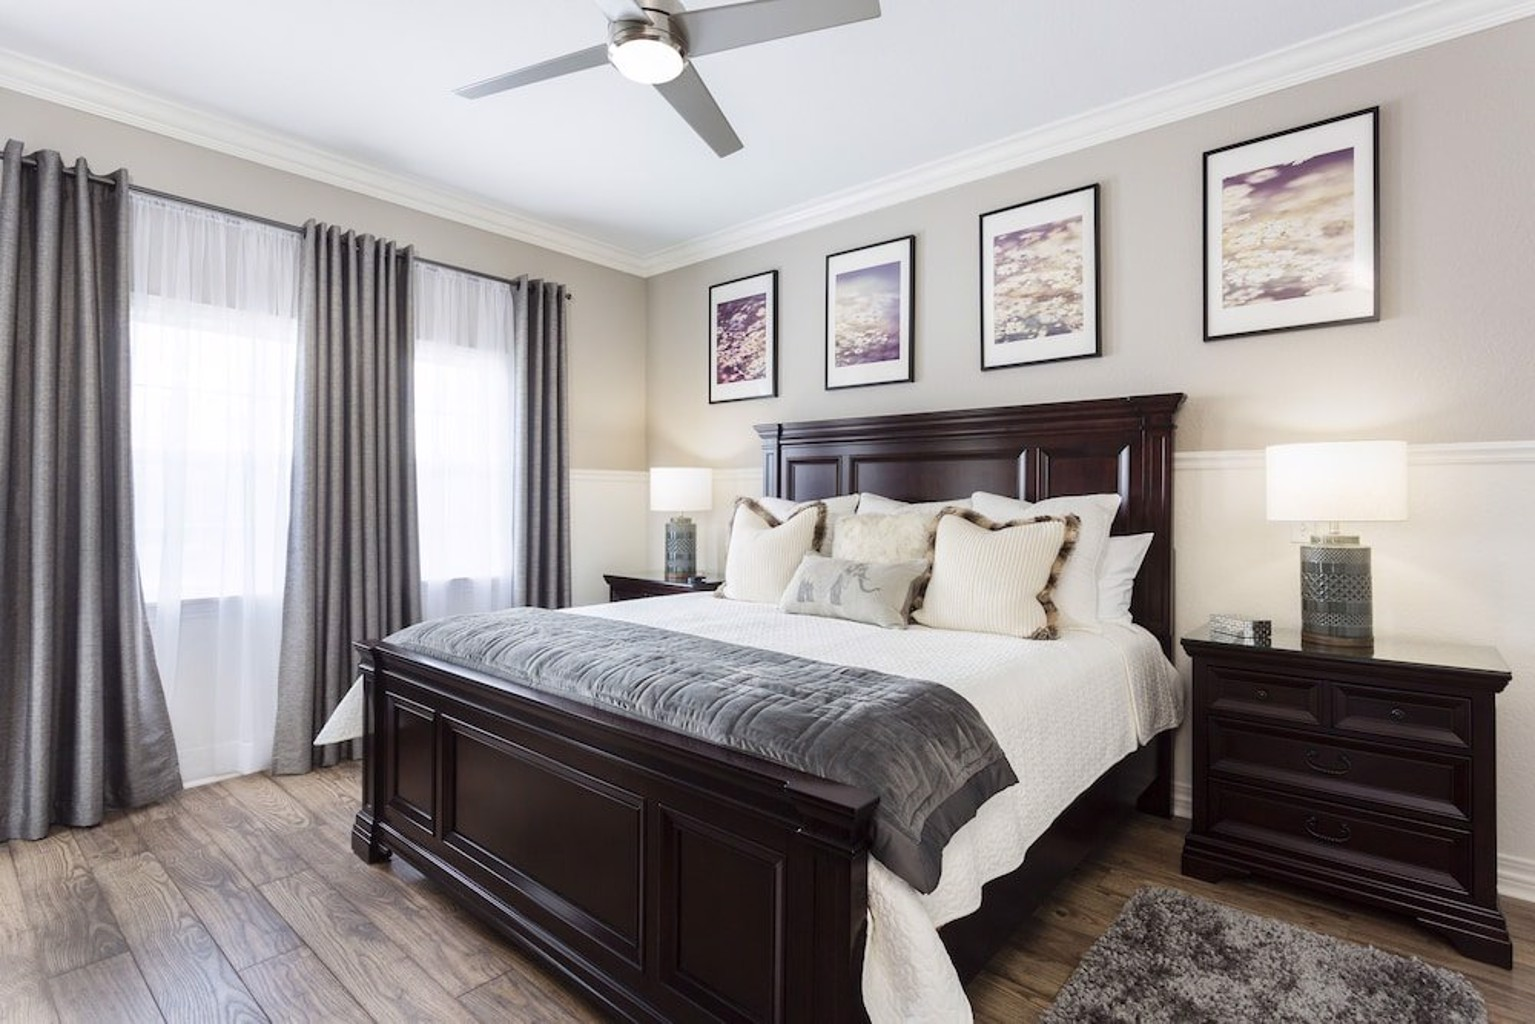 Stunning All New Decor Nov 2015 3 Br condo by RedAwning